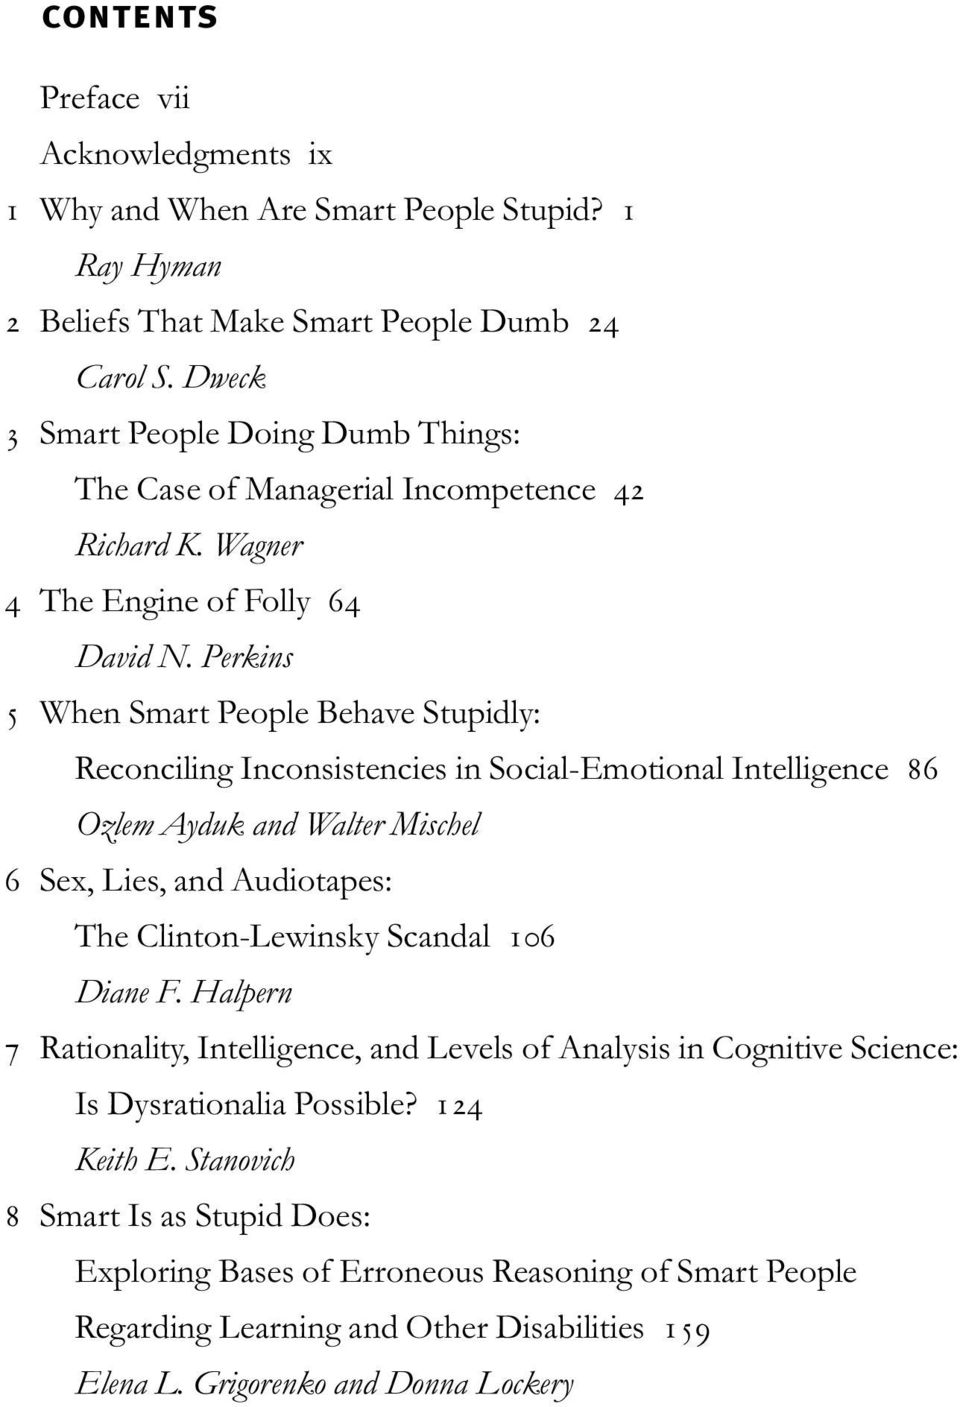 Perkins 5 When Smart People Behave Stupidly: Reconciling Inconsistencies in Social-Emotional Intelligence 86 Ozlem Ayduk and Walter Mischel 6 Sex, Lies, and Audiotapes: The Clinton-Lewinsky